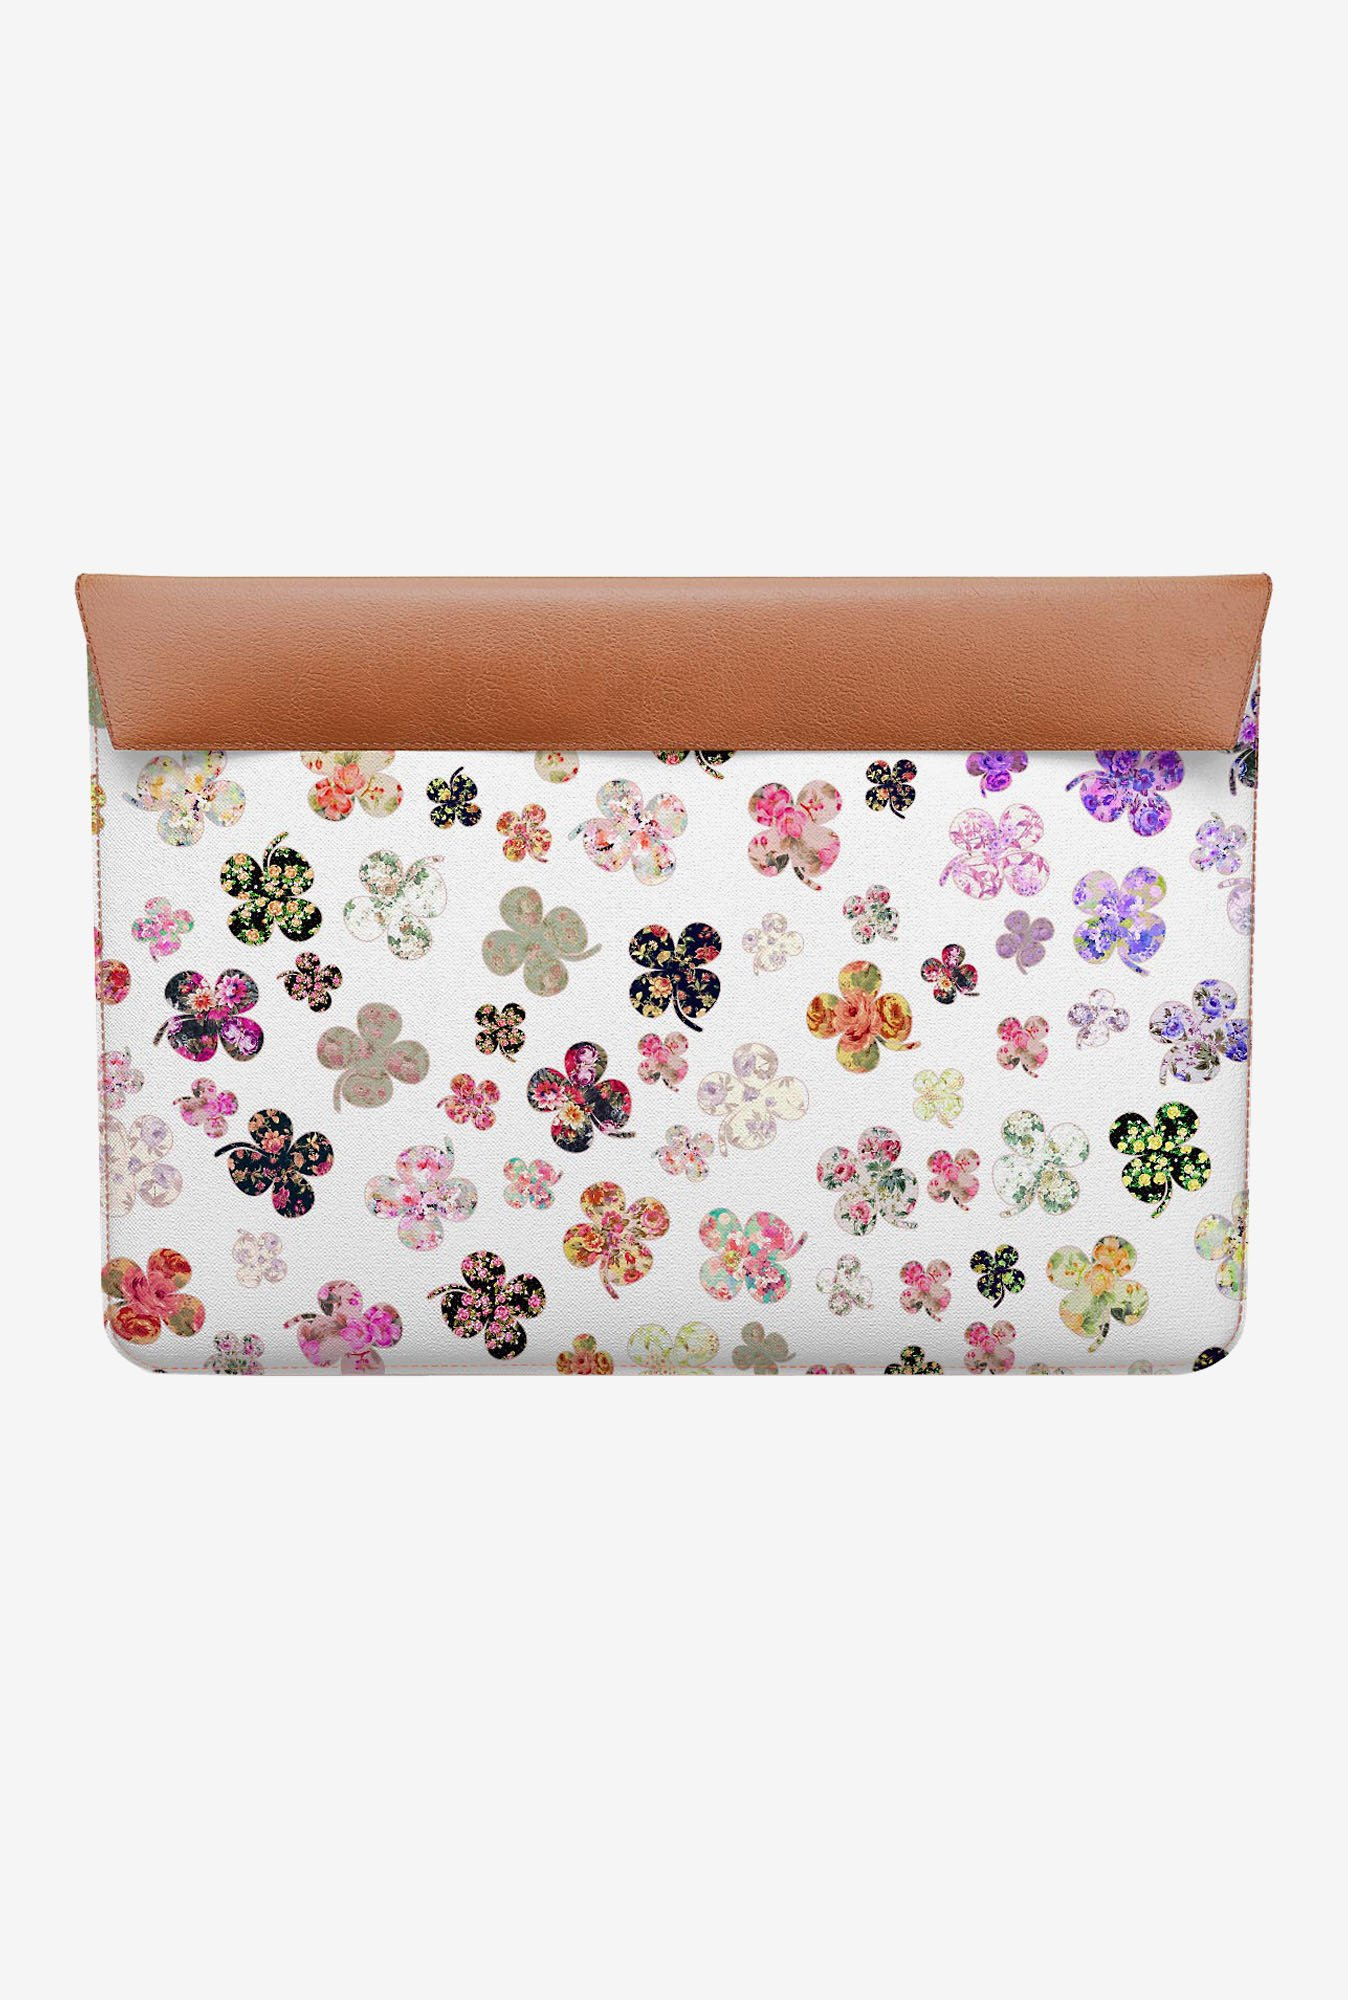 DailyObjects Floral Clovers MacBook 12 Envelope Sleeve